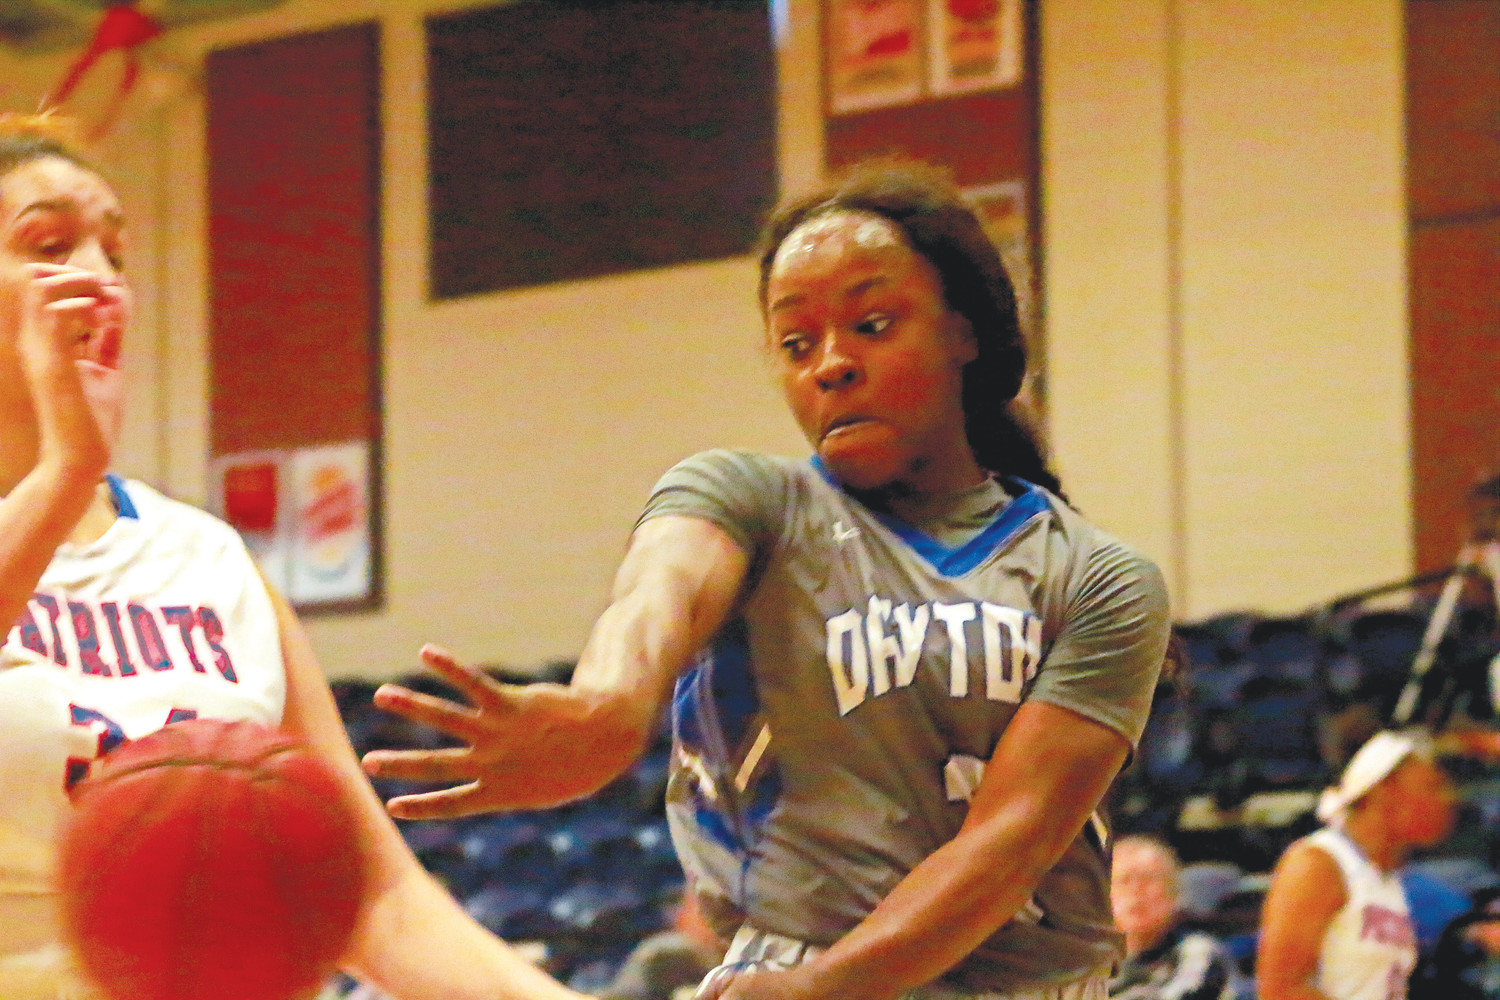 Daytona State College second year guard Destiny Arvinger, an Oakleaf High standout, has the Falcons in line for another shot at a conference title with a 16.8 points per game average with 3.4 assists and two steals per game.